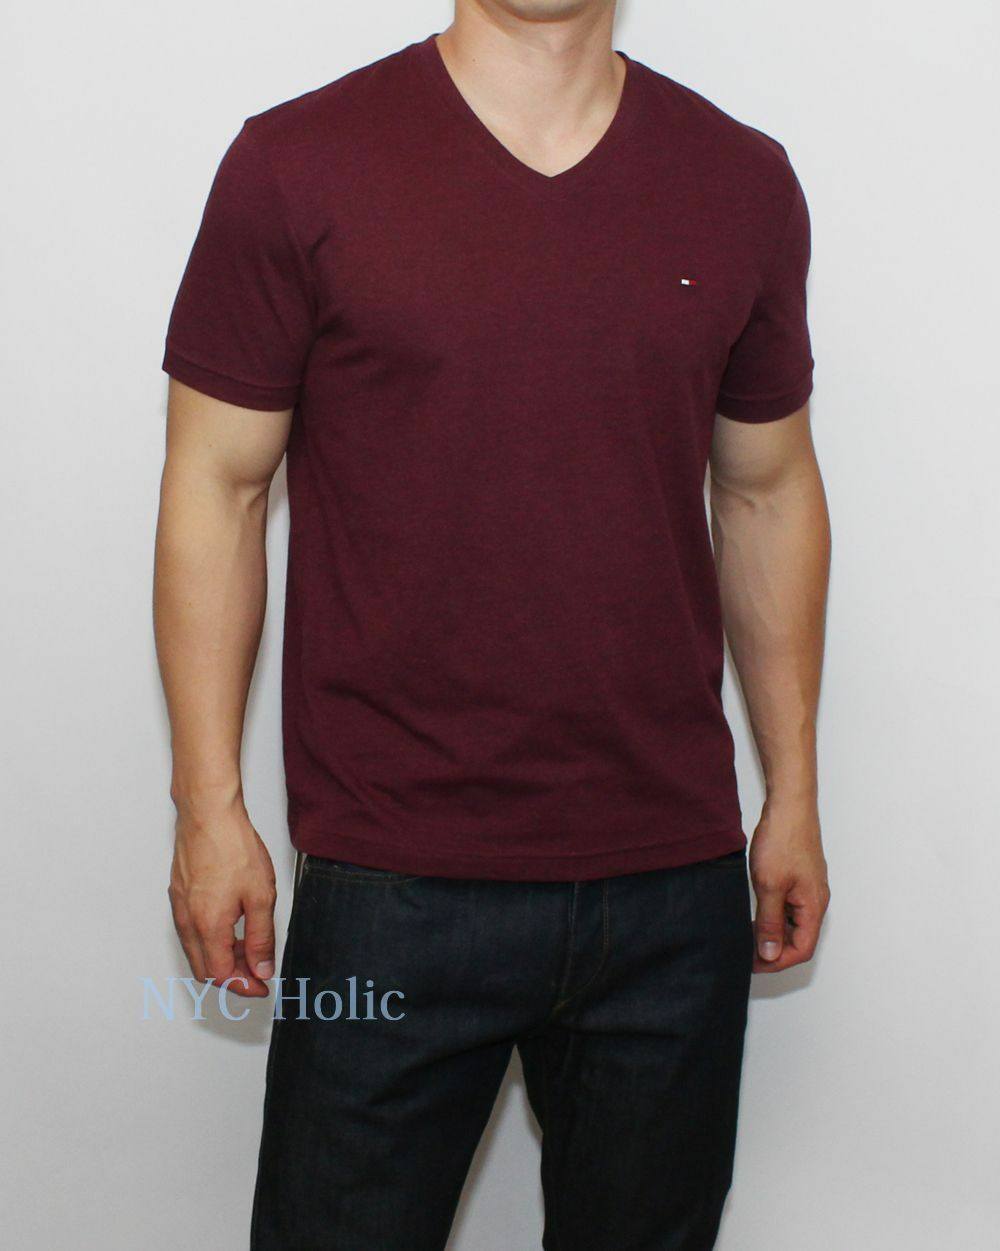 New tommy hilfiger mens classic fit v neck tee shirt t for Tommy hilfiger vintage fit shirt